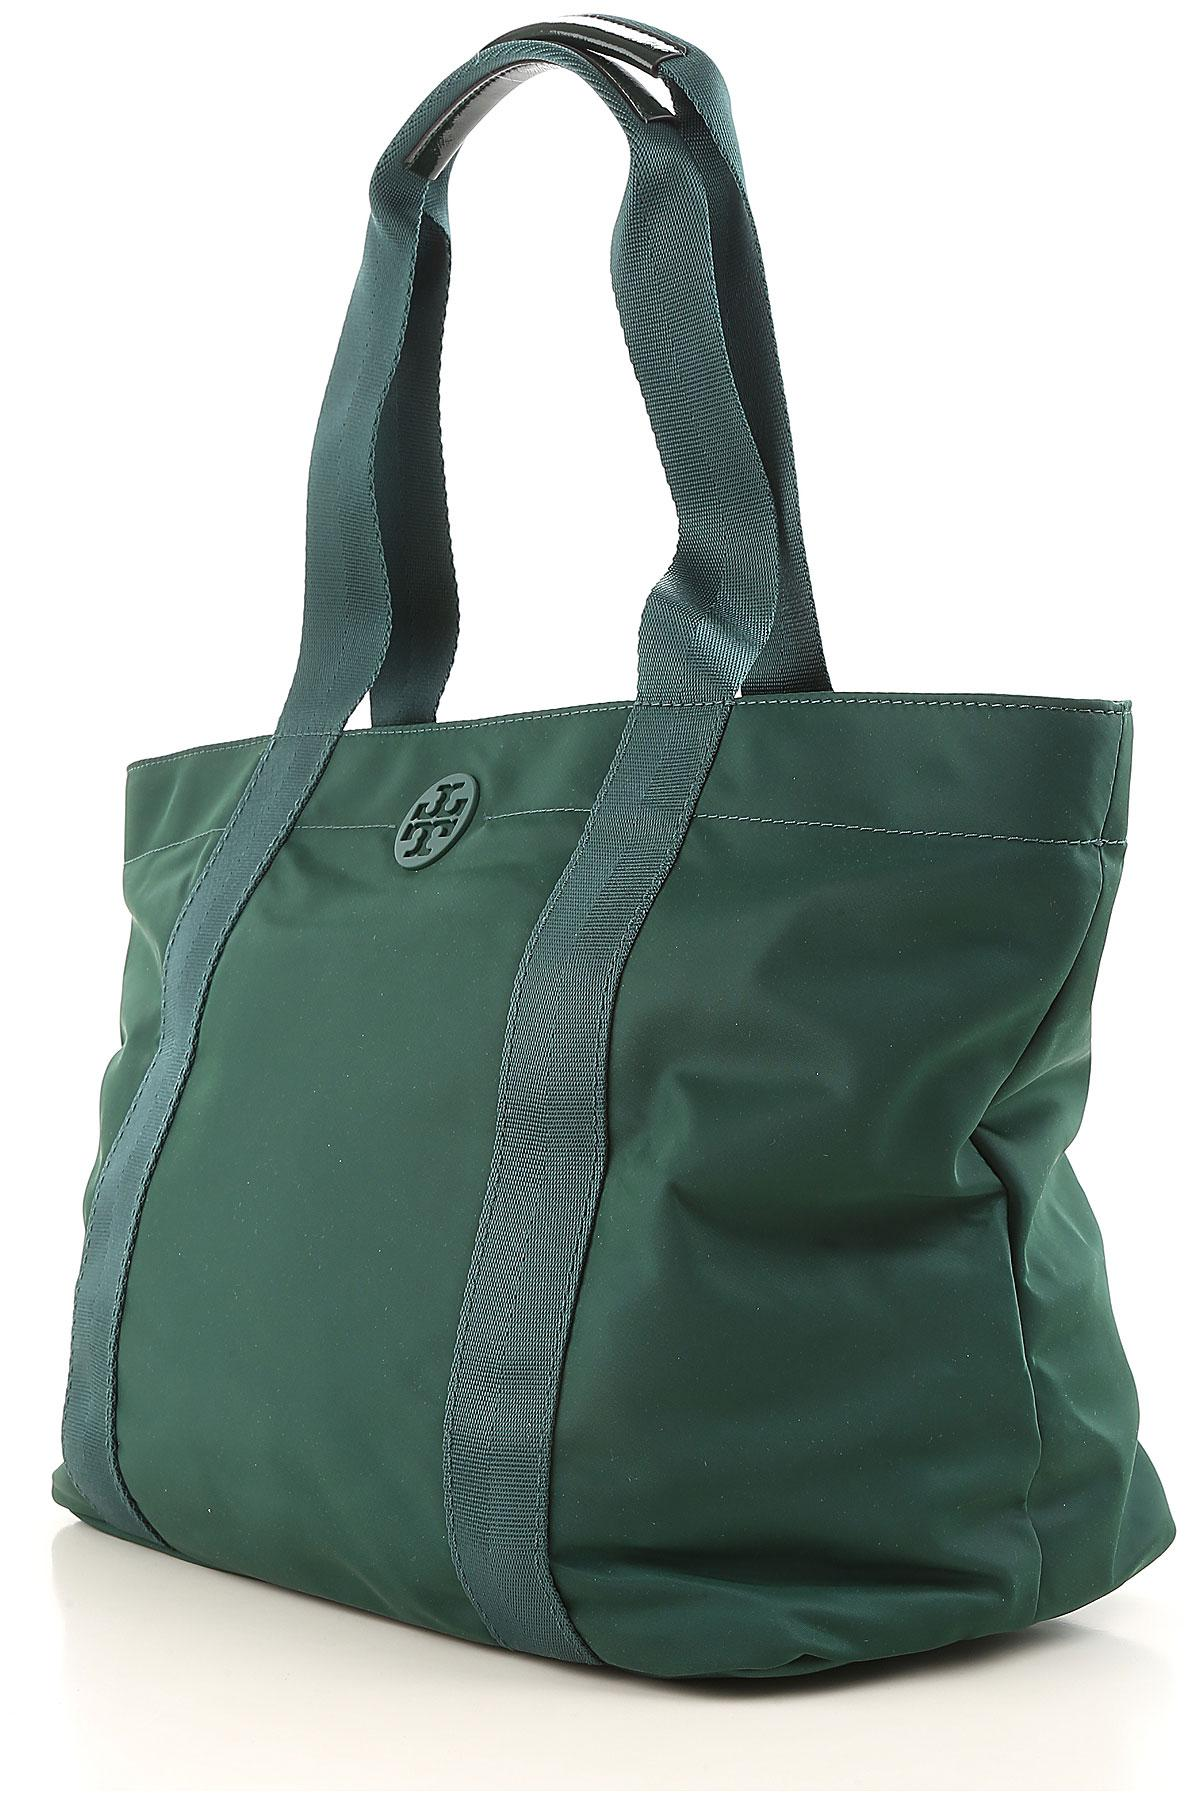 Lyst - Tory Burch Tote Bag On Sale In Outlet in Green e46f3aea980d